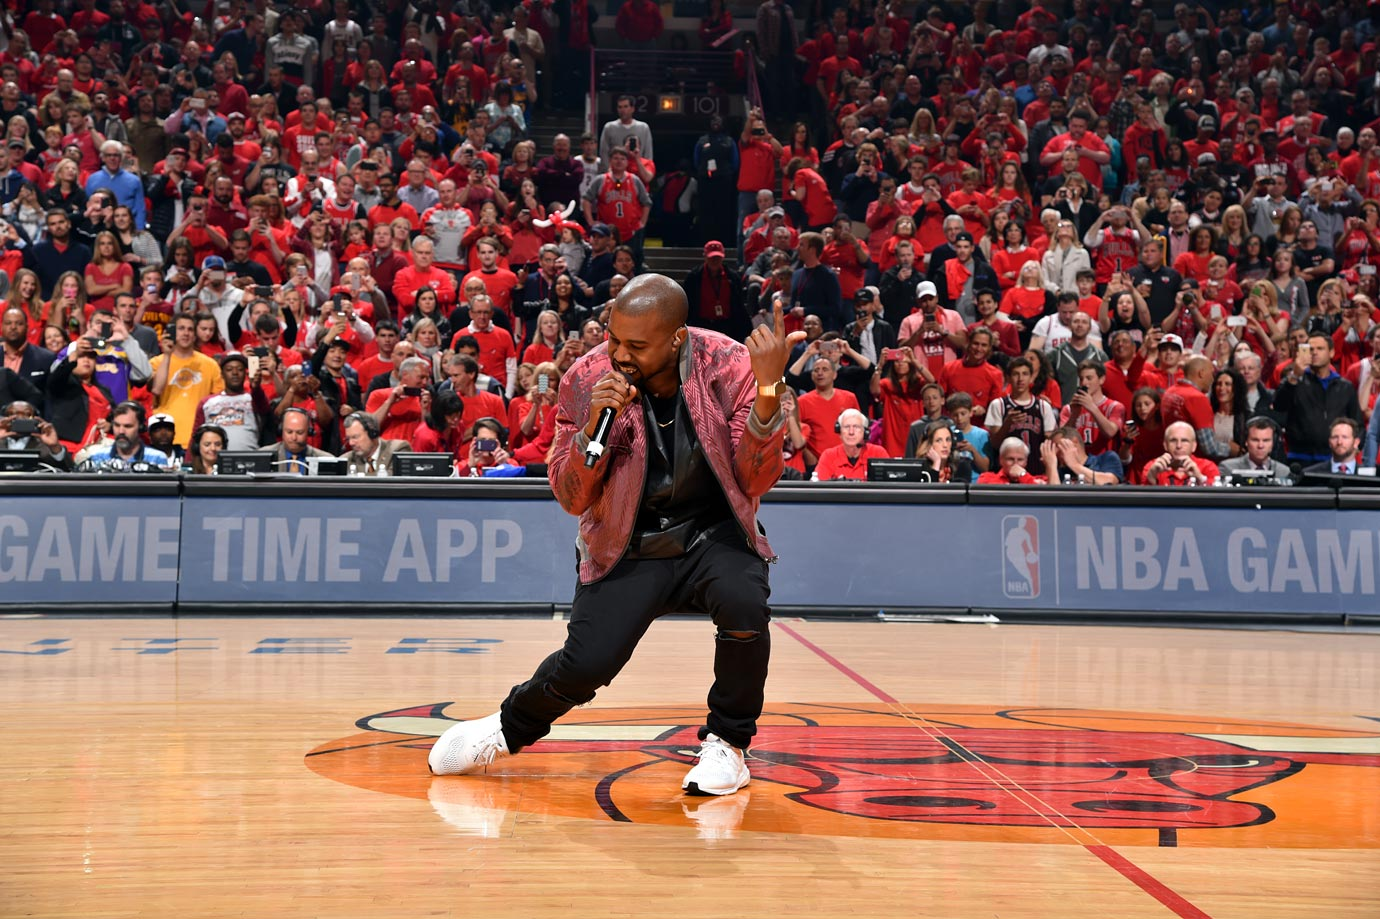 May 10, 2015: Chicago Bulls vs. Cleveland Cavaliers at United Center in Chicago — Eastern Conference Semifinals, Game 4